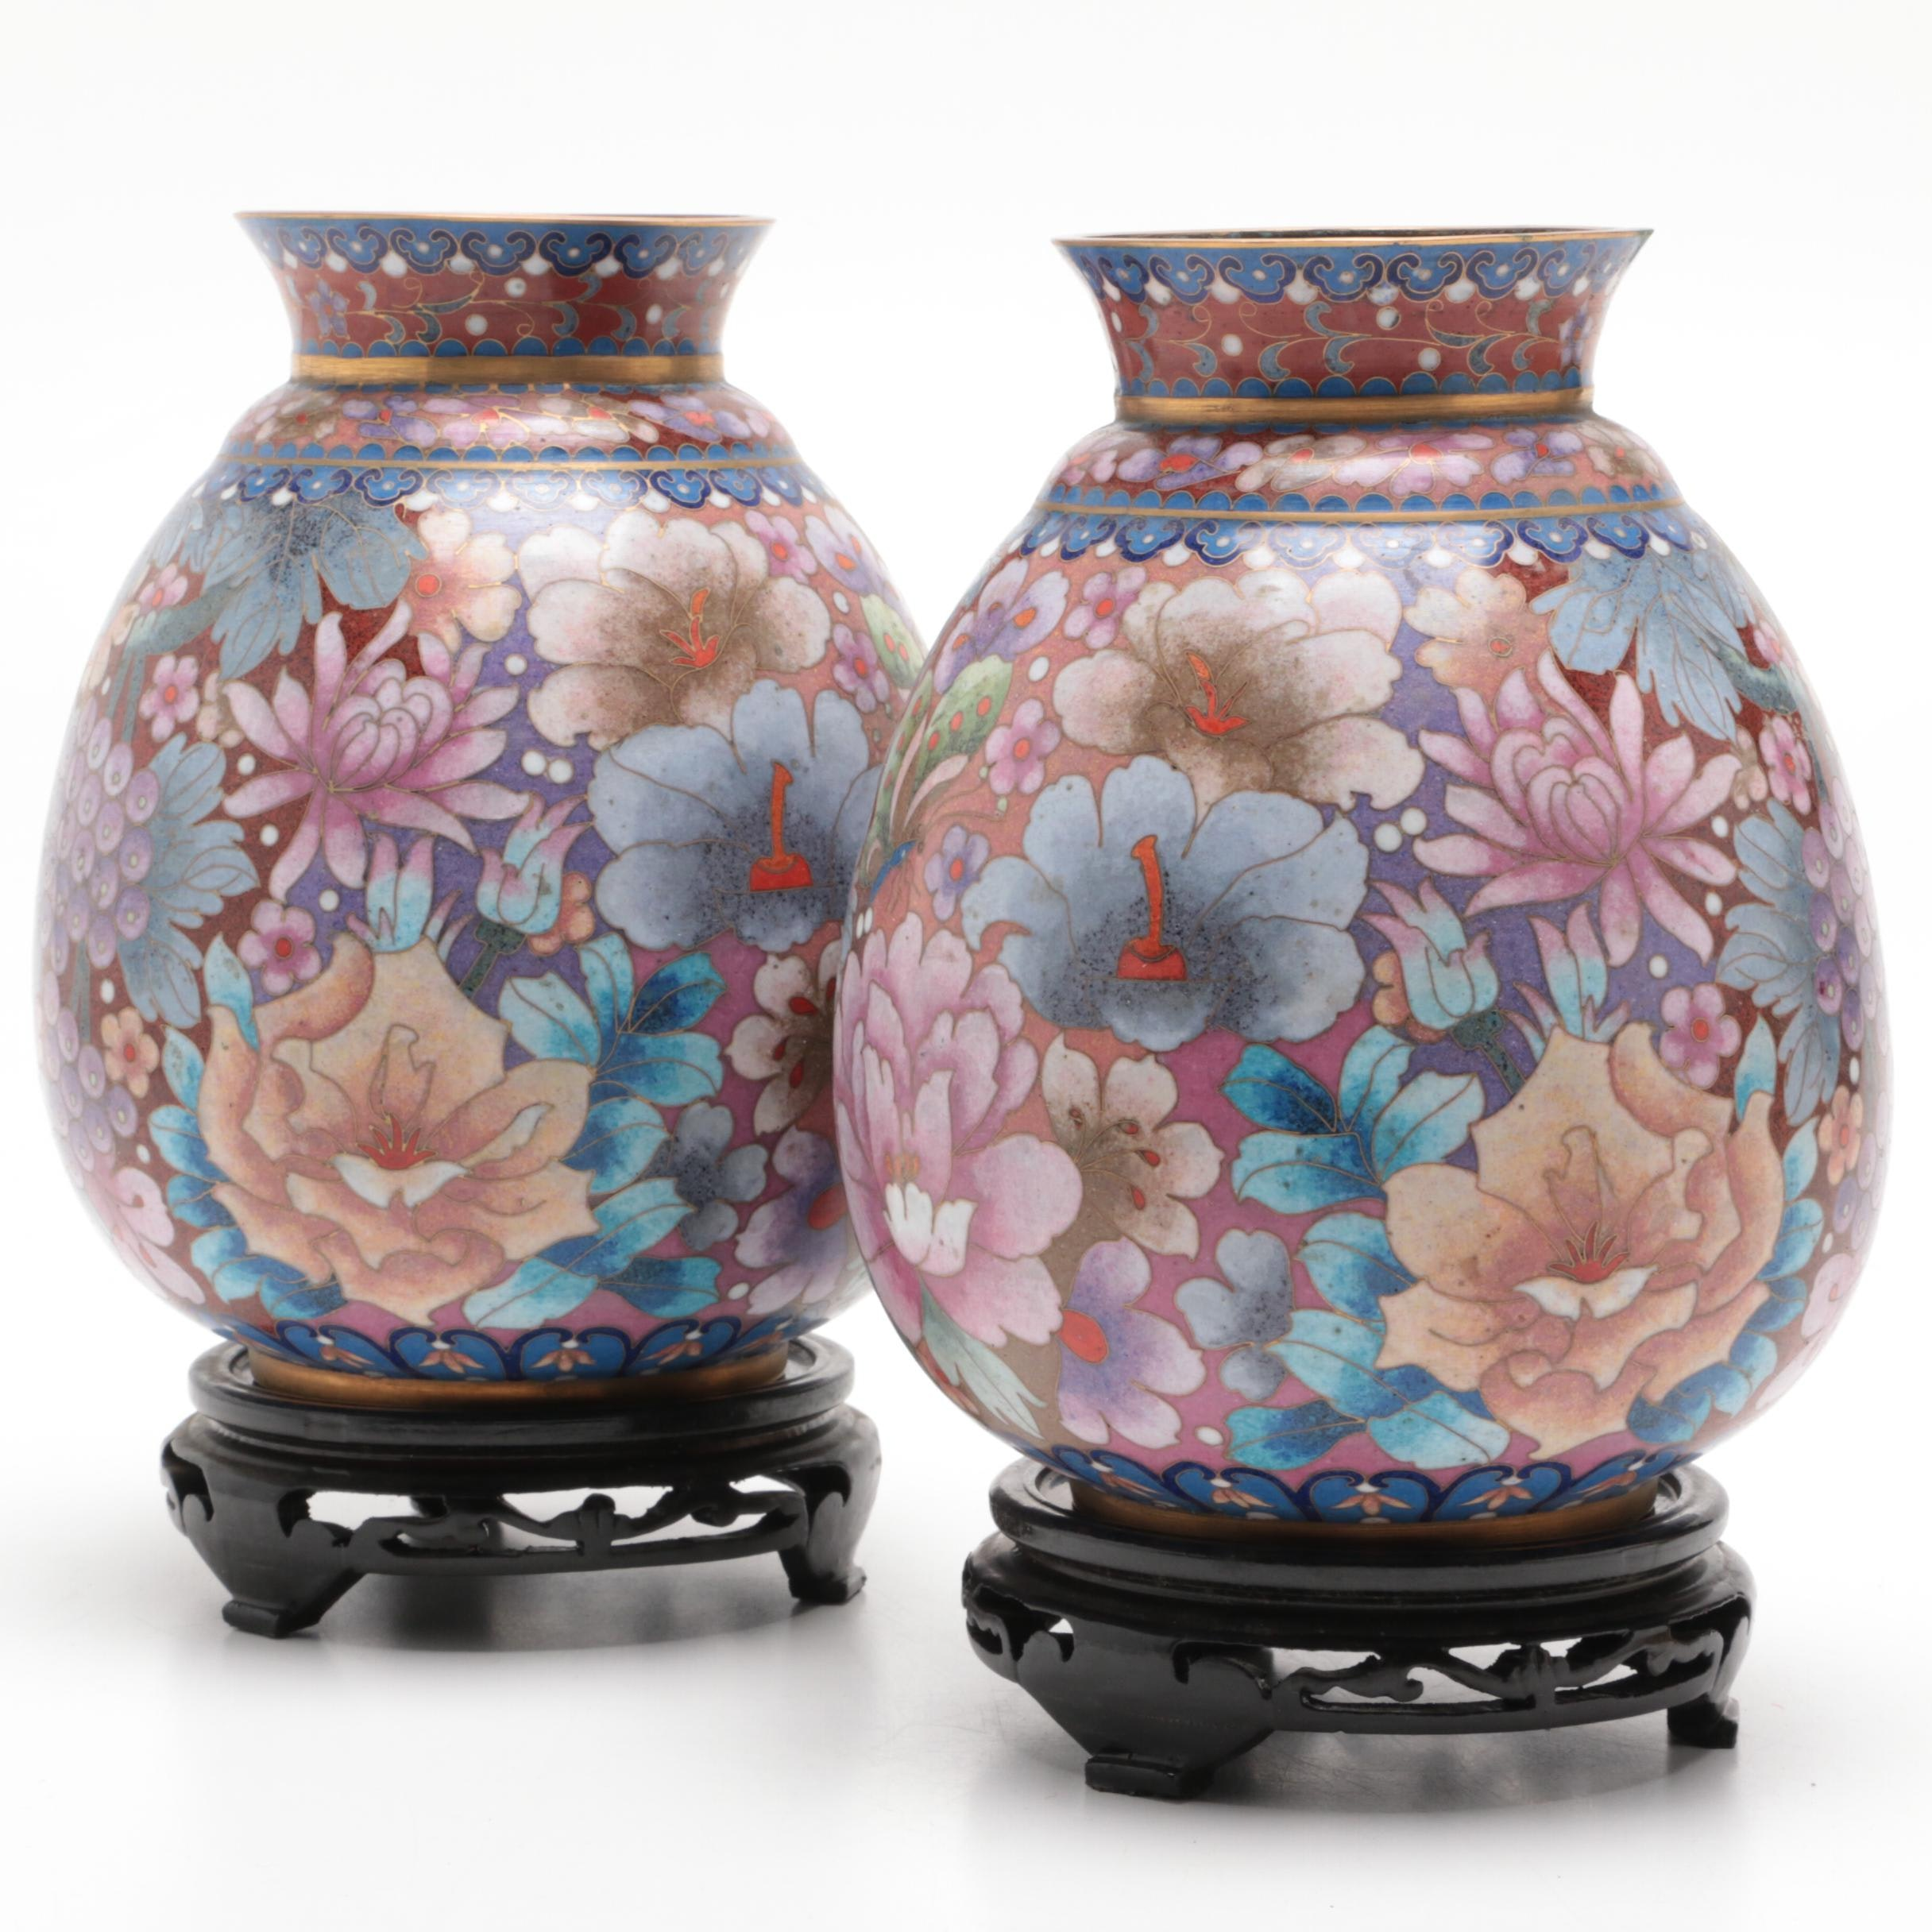 Chinese Cloisonne Ceramic Vases with Wood Bases